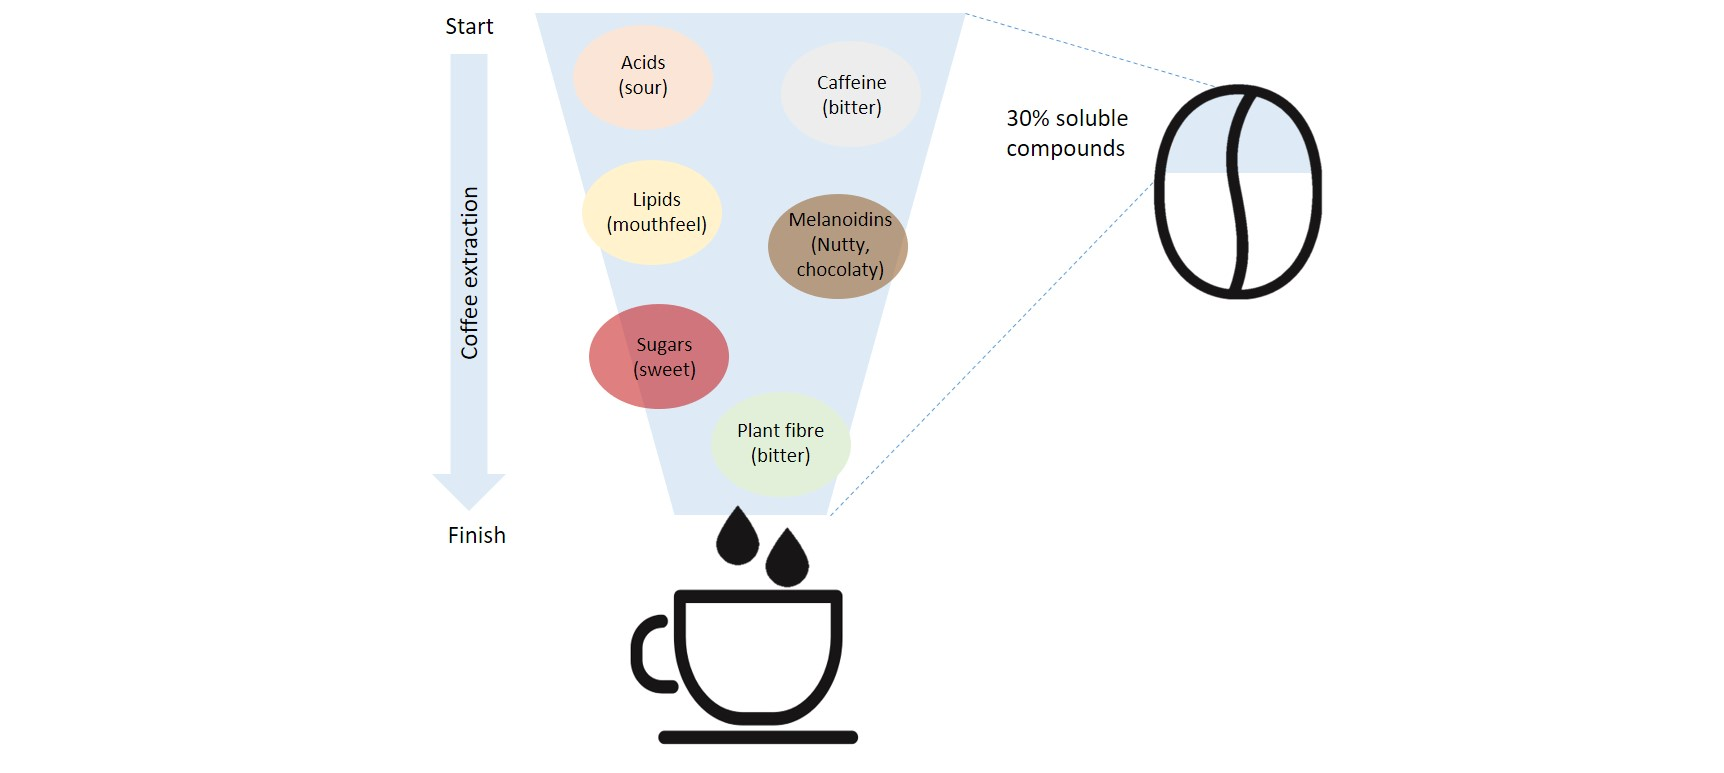 soluble compounds found in coffee contributing to flavour